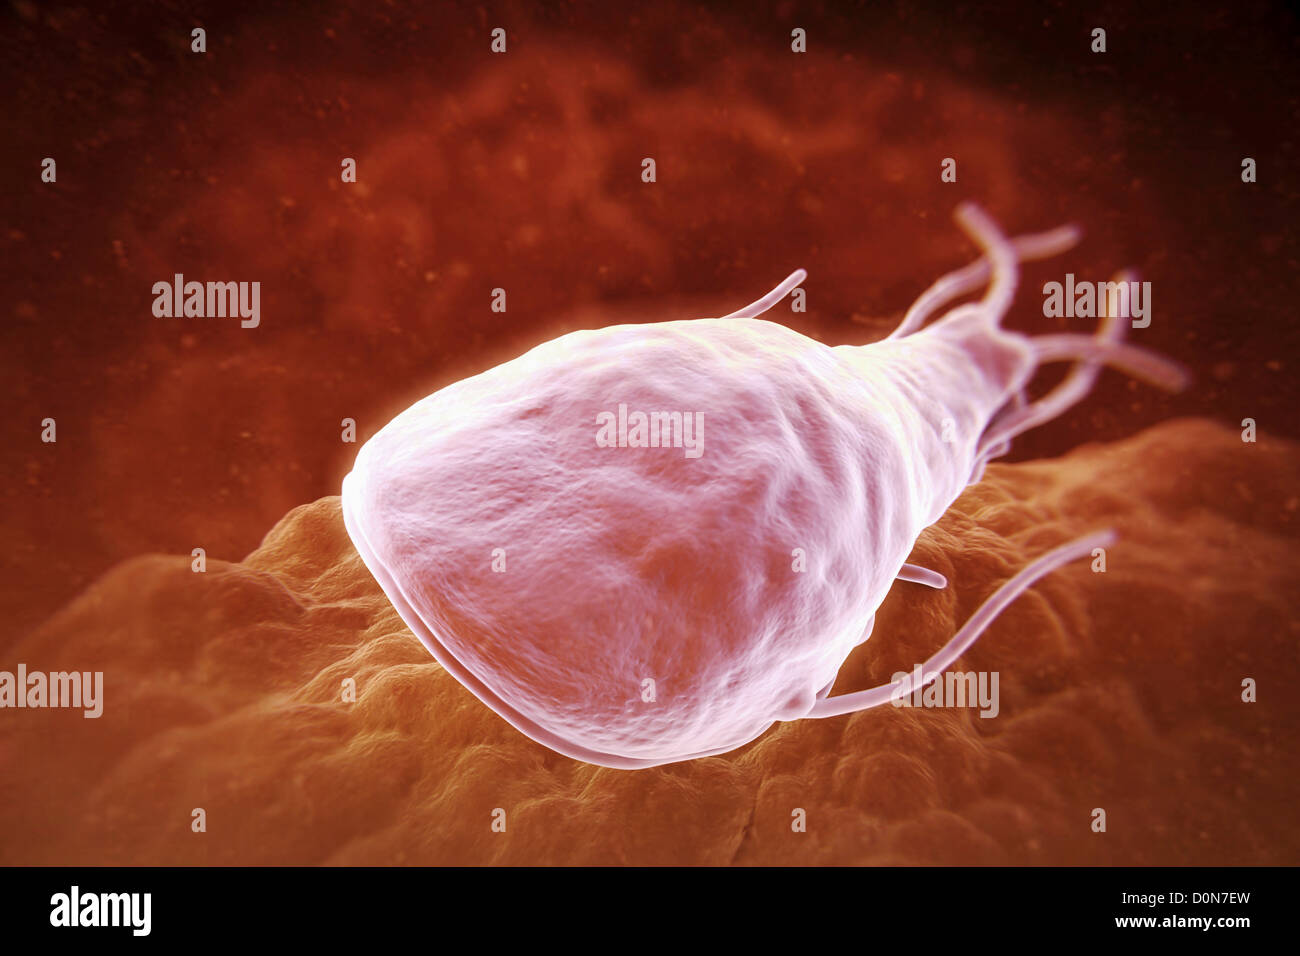 a protozoan parasite Start studying protozoa learn vocabulary, terms, and more with flashcards, games, and other study tools  definitive host is the one in which the parasite.